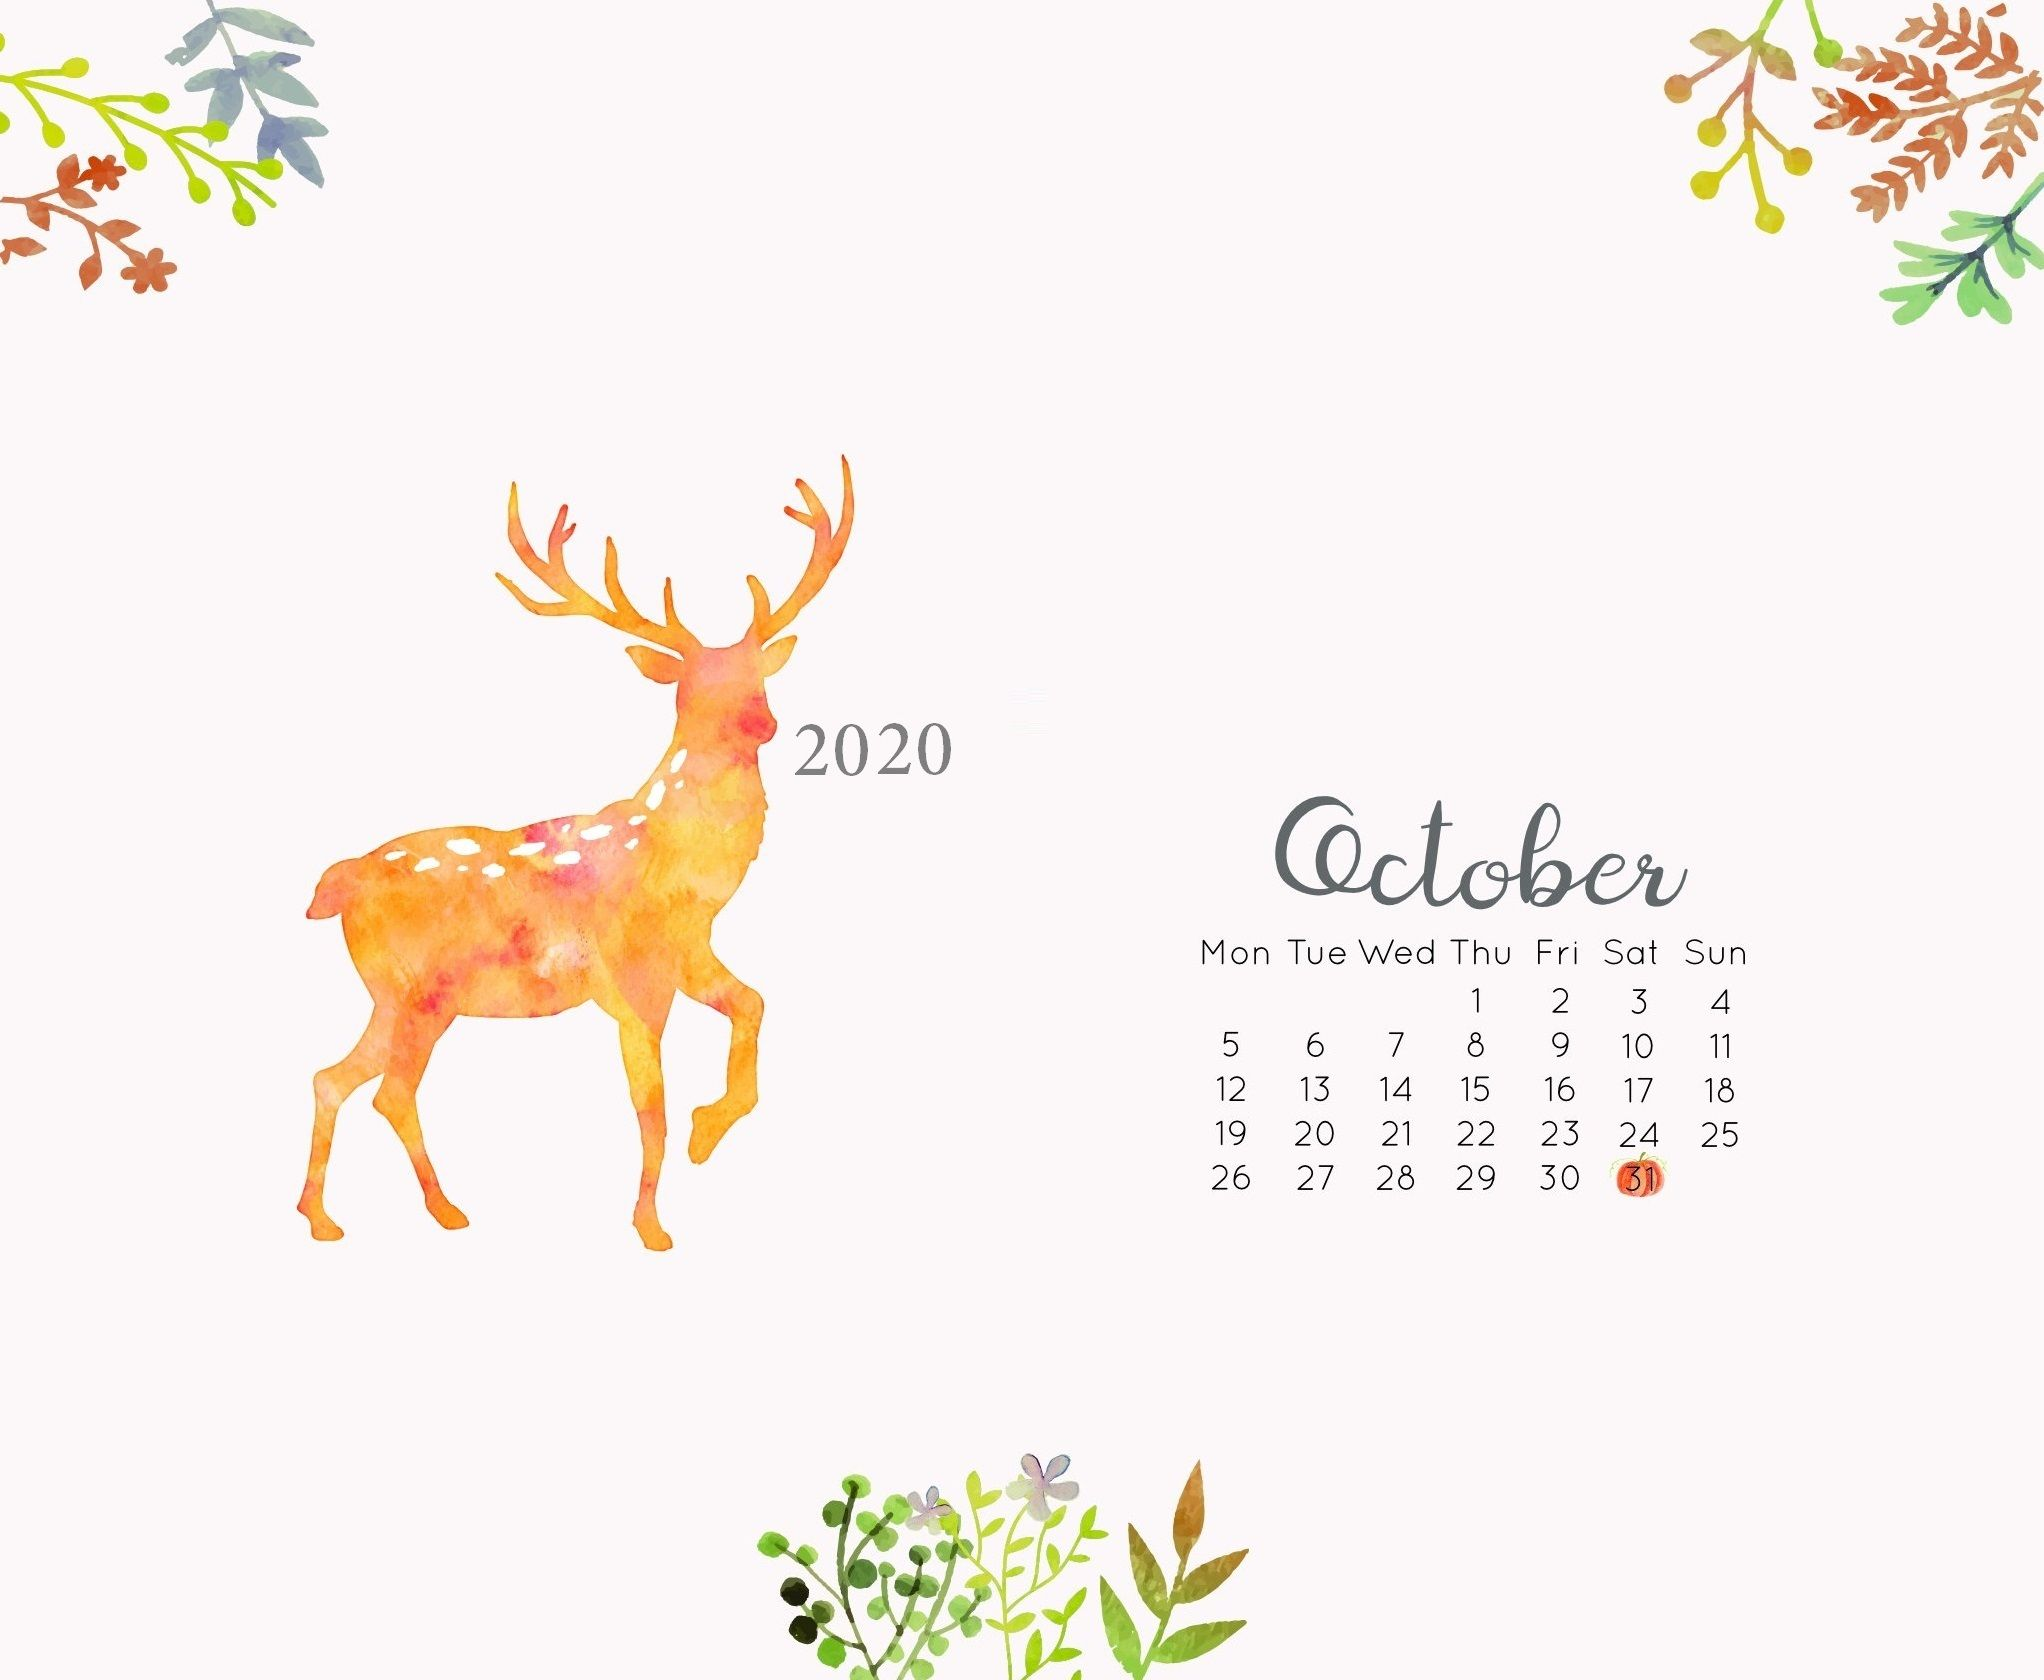 October 2020 Wallpapers Wallpaper Cave